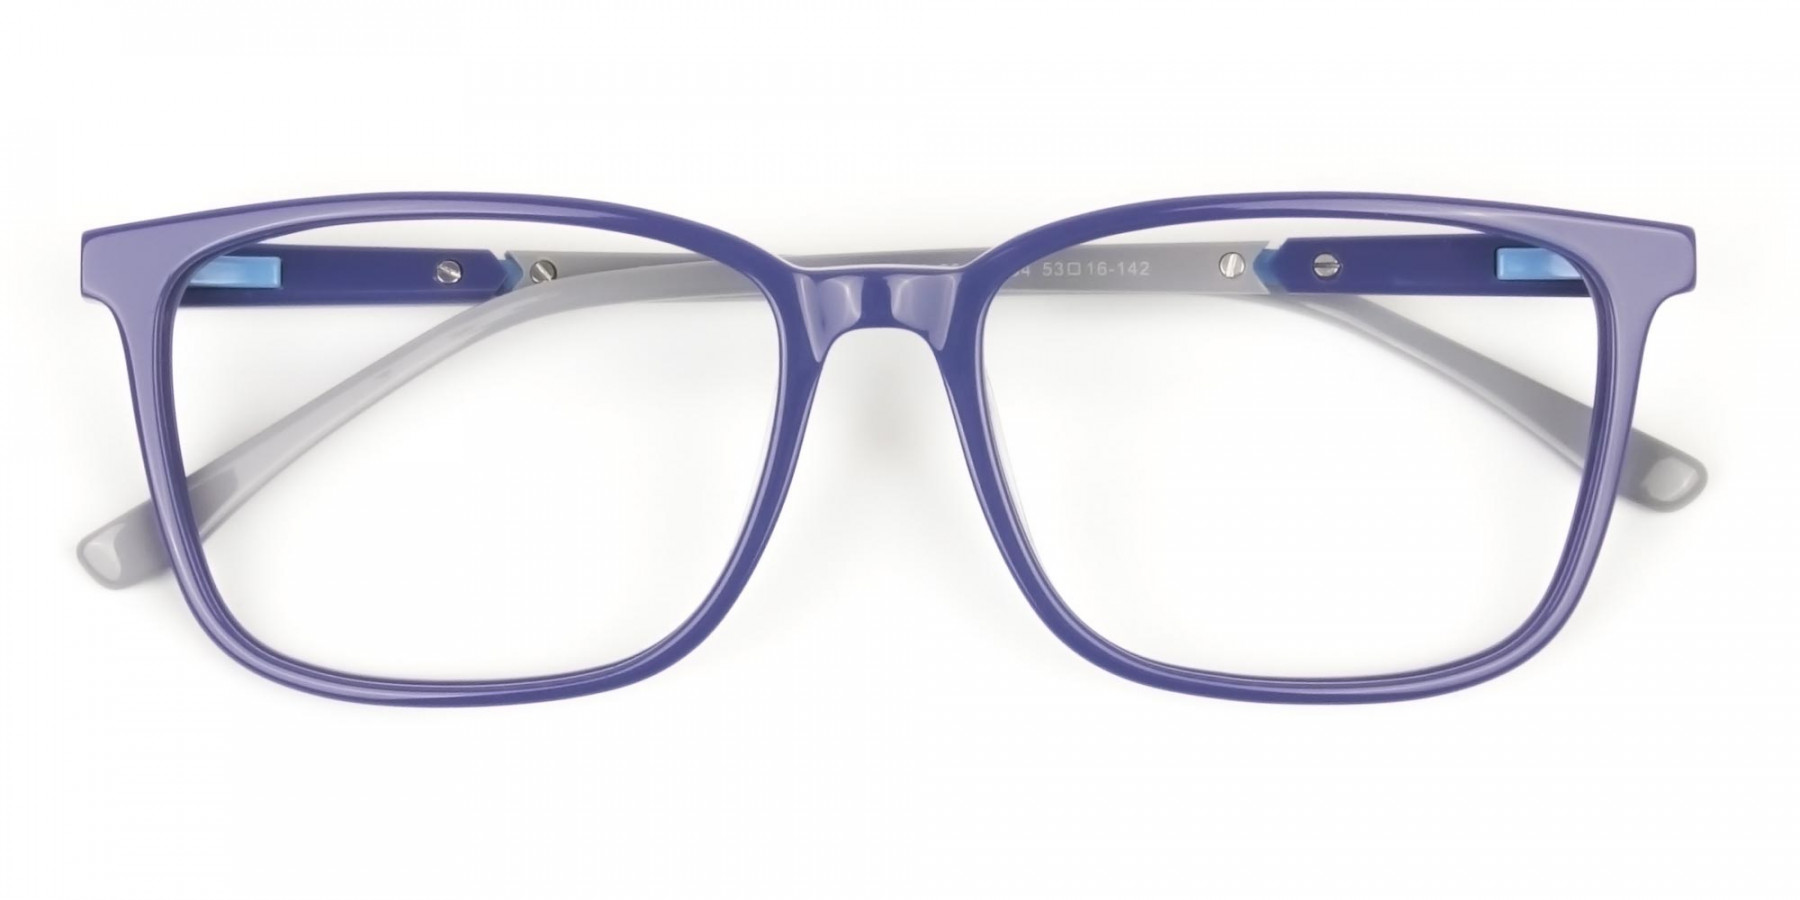 Sporty Casual Rectangular Grey & Royal Blue Spectacle Frames - 1